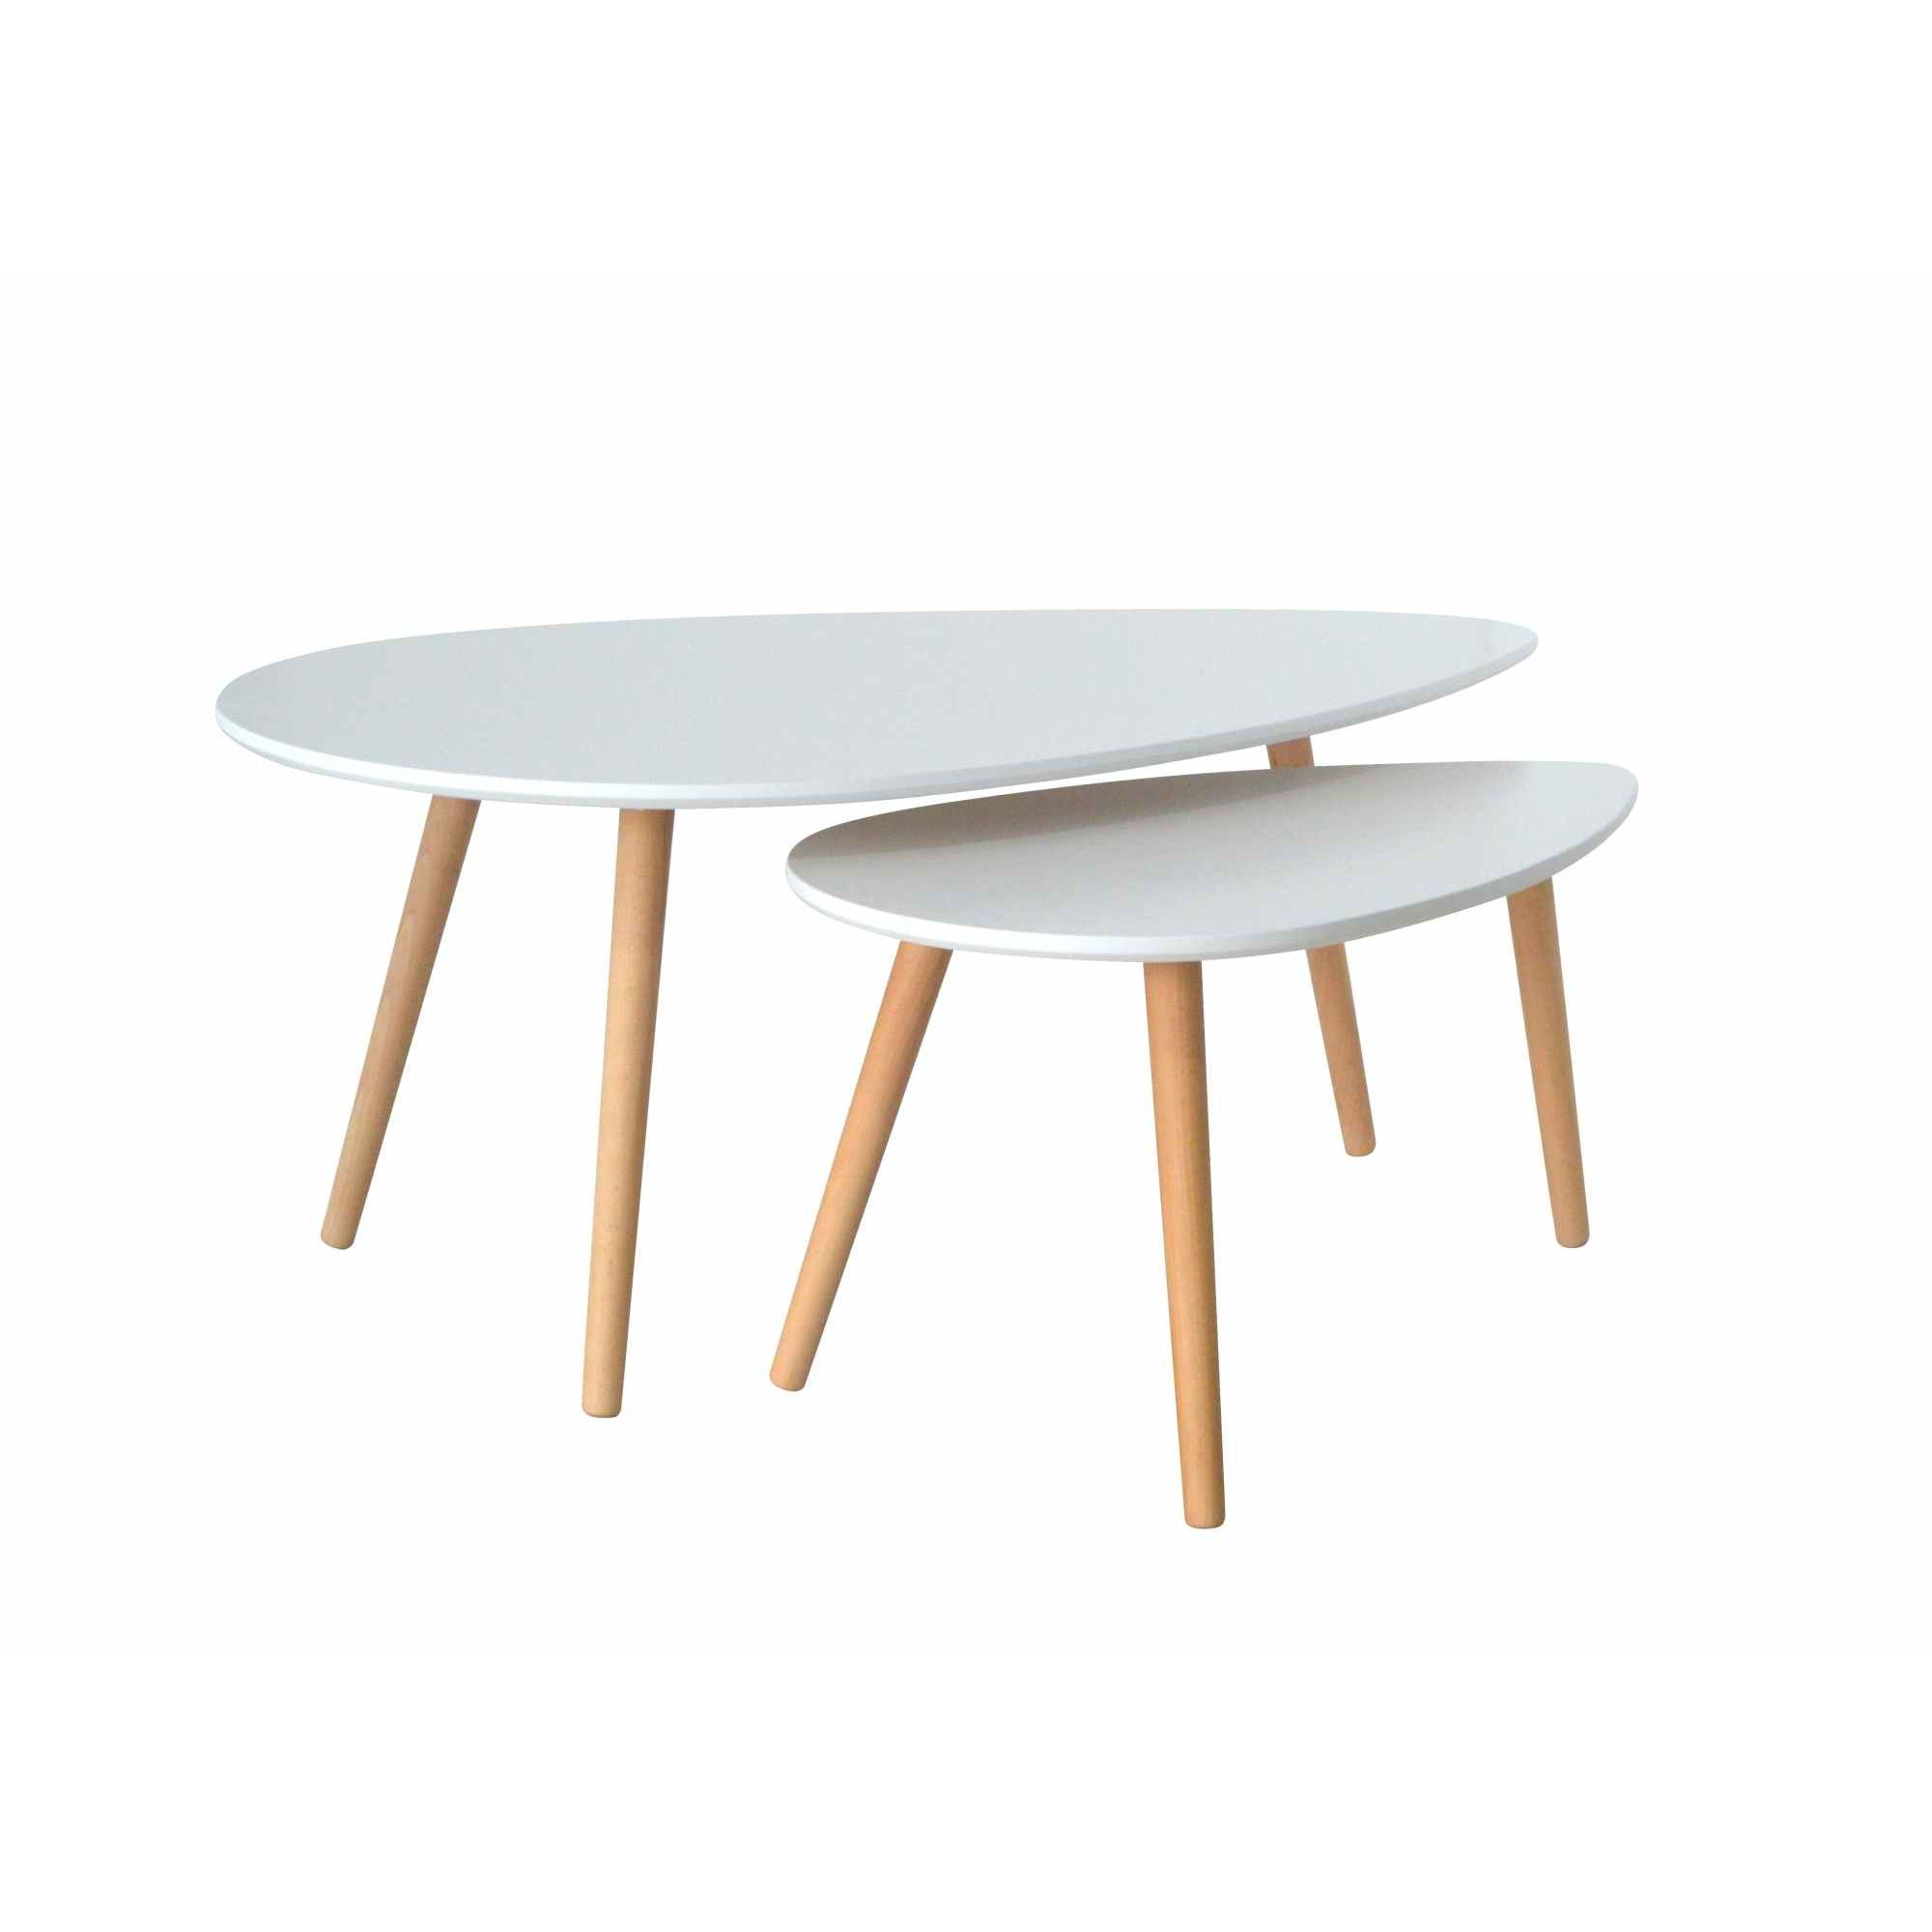 Emejing table basse blanche scandinave contemporary for Table de nuit scandinave